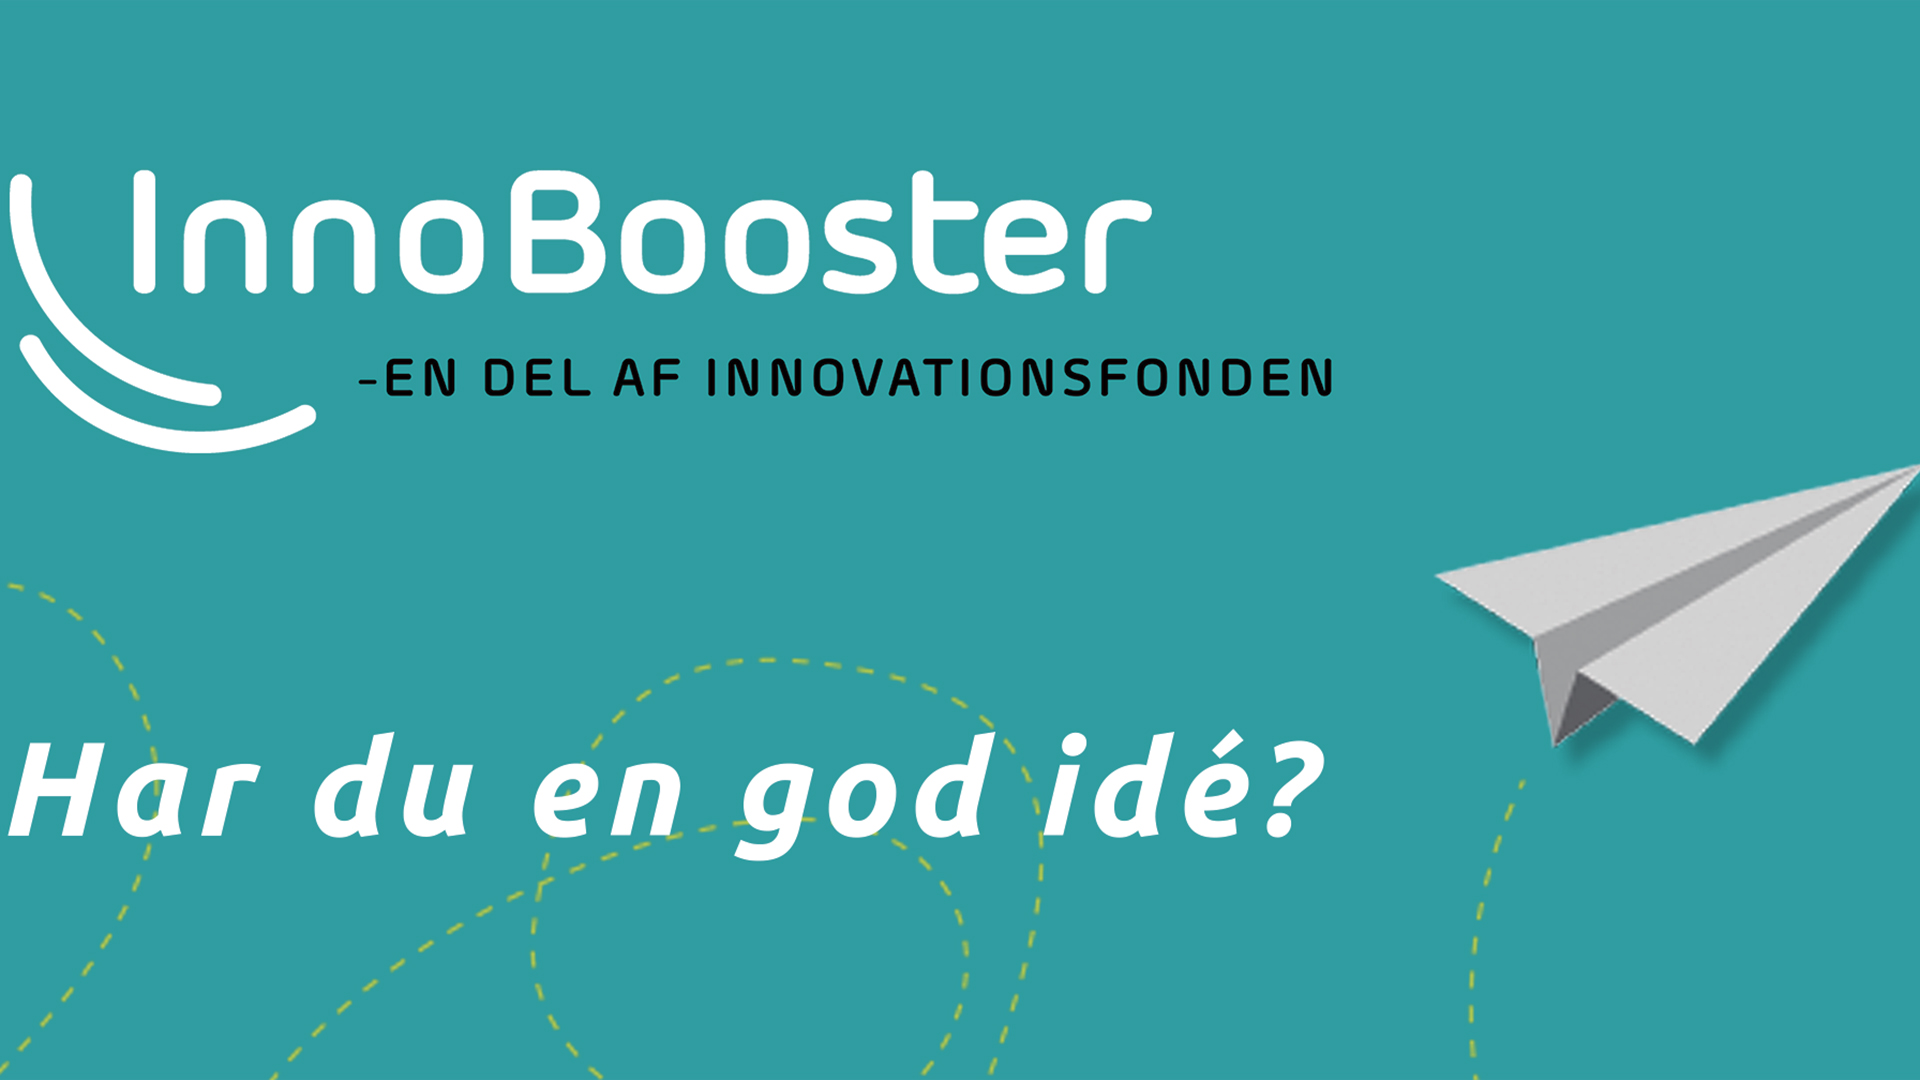 logo til innovationsfondens innobooster program